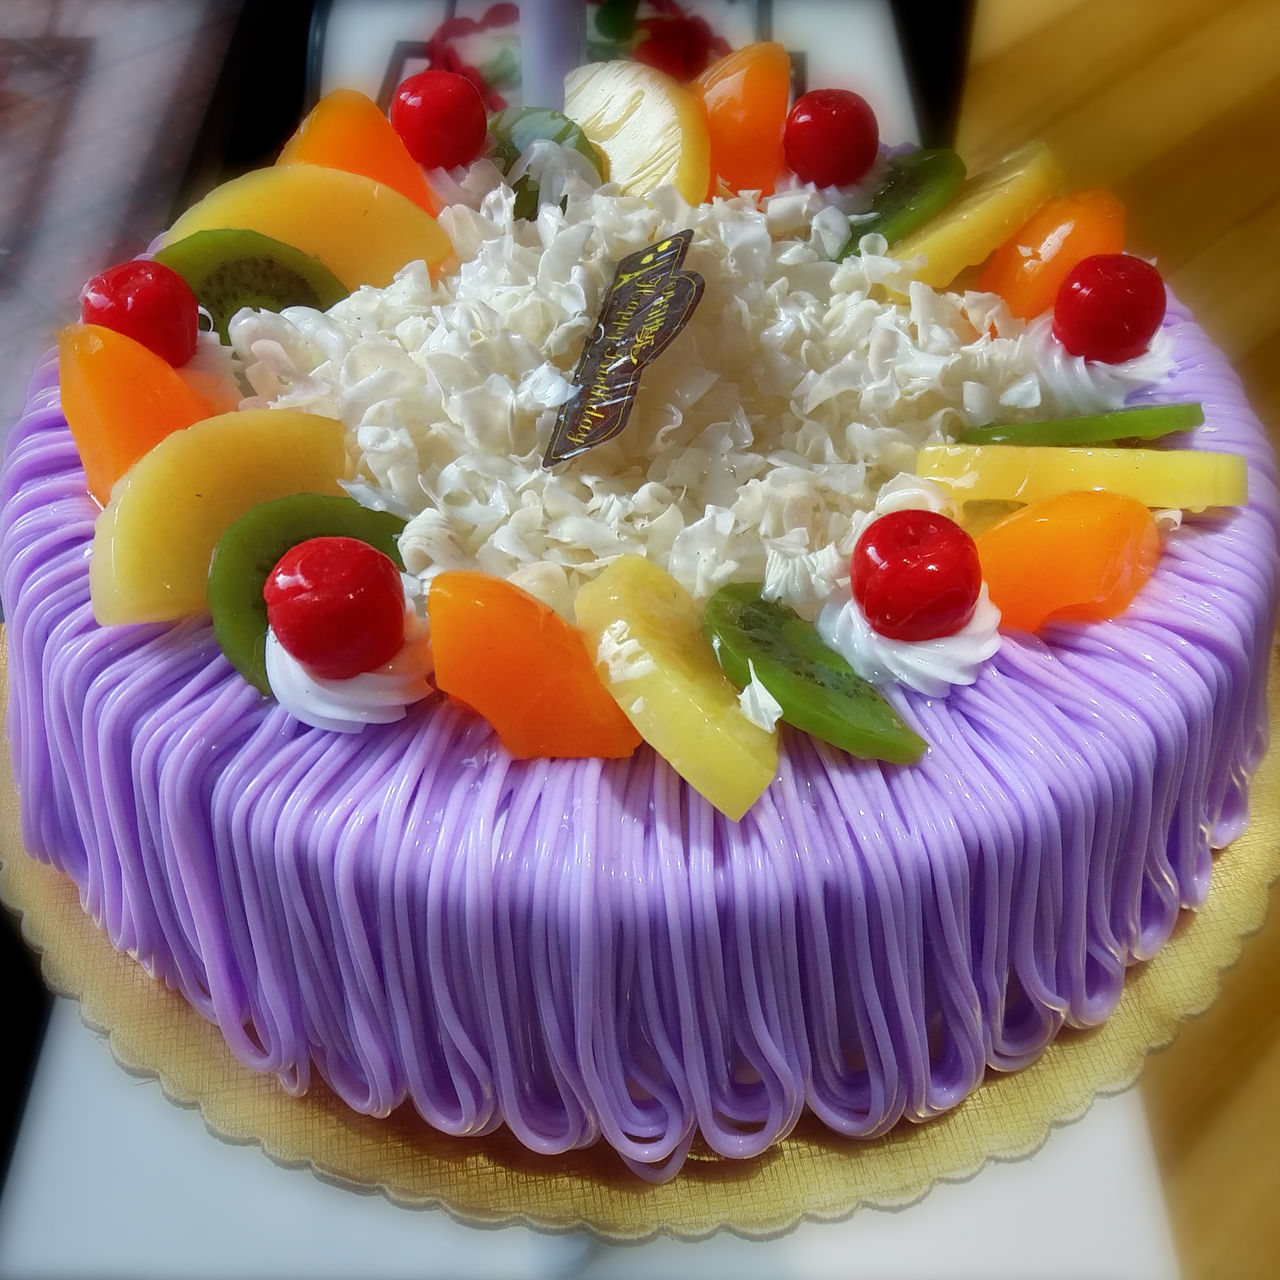 You know I love purple ☺ Temptation Dream Cake Cake Ready-to-eat Indulgence Sweet Food Close-up No People Dessert Food And Drink